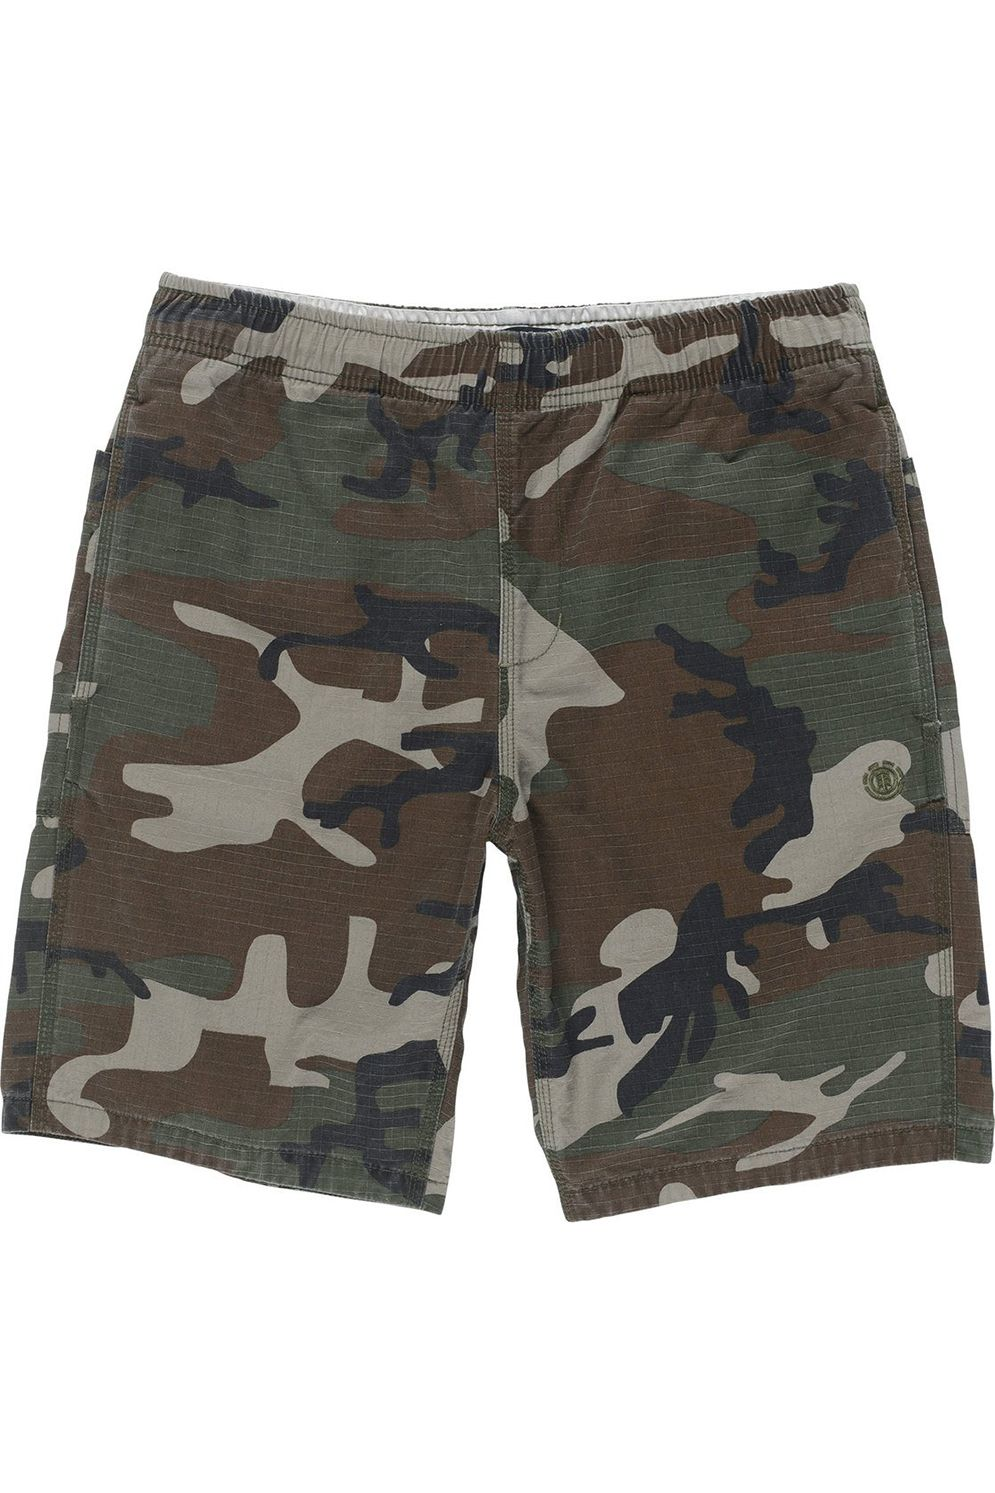 Walkshorts Element PULL UP RIPSTOP CAMO SEASONAL COLLECTION Camo